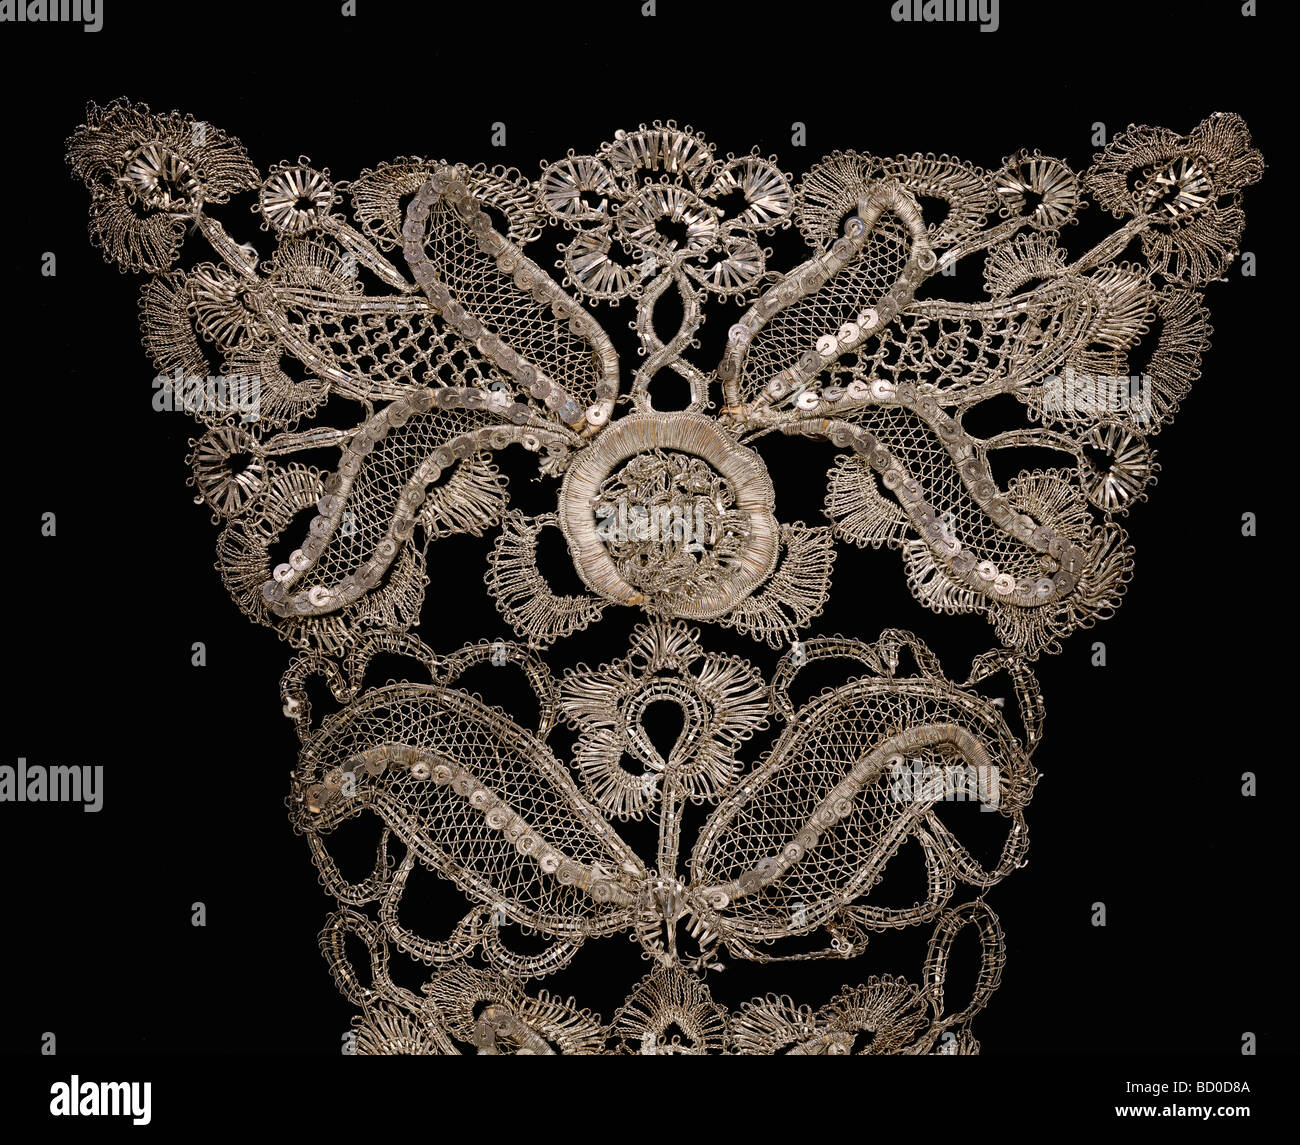 Gown and Stomacher, detail. England, early 18th century - Stock Image